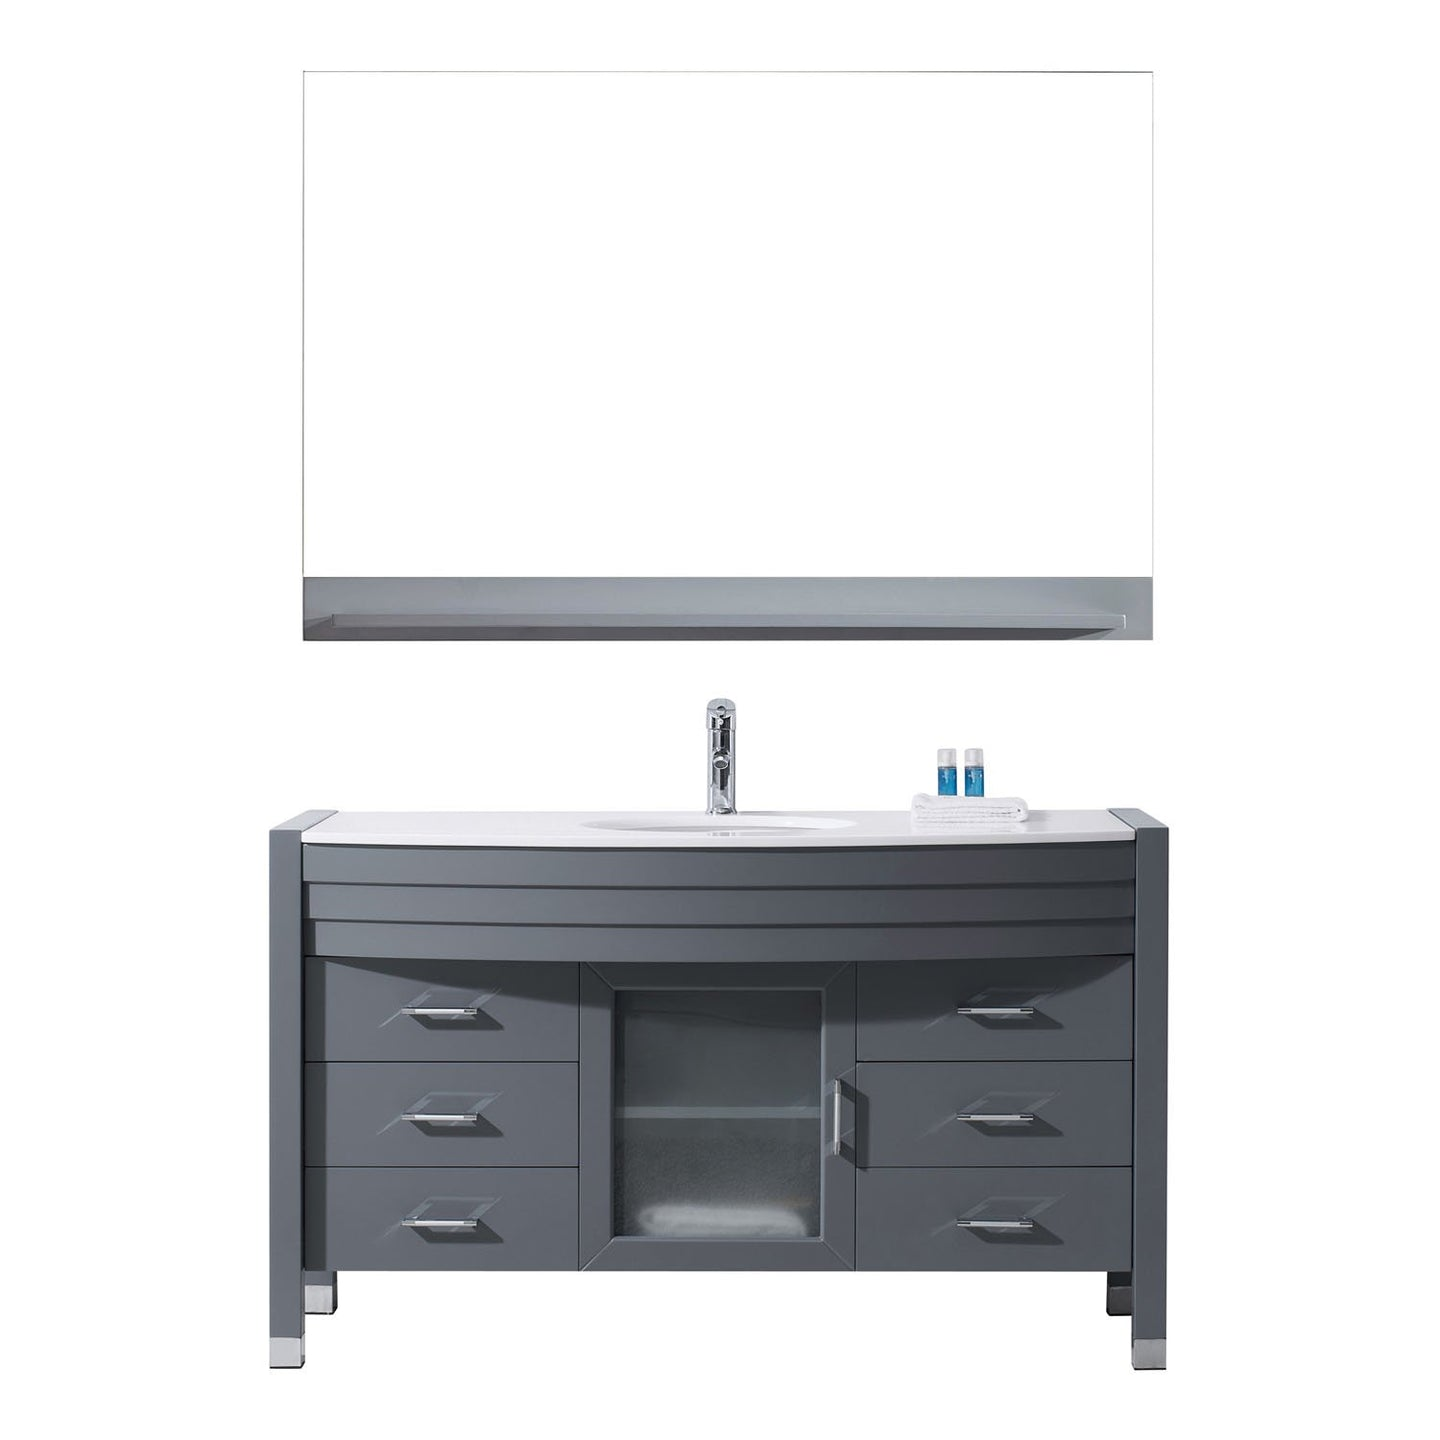 Ava 55″ Single Bathroom Vanity in Grey with White Engineered Stone Top Round Sink and Polished Chrome Faucet with MIrror